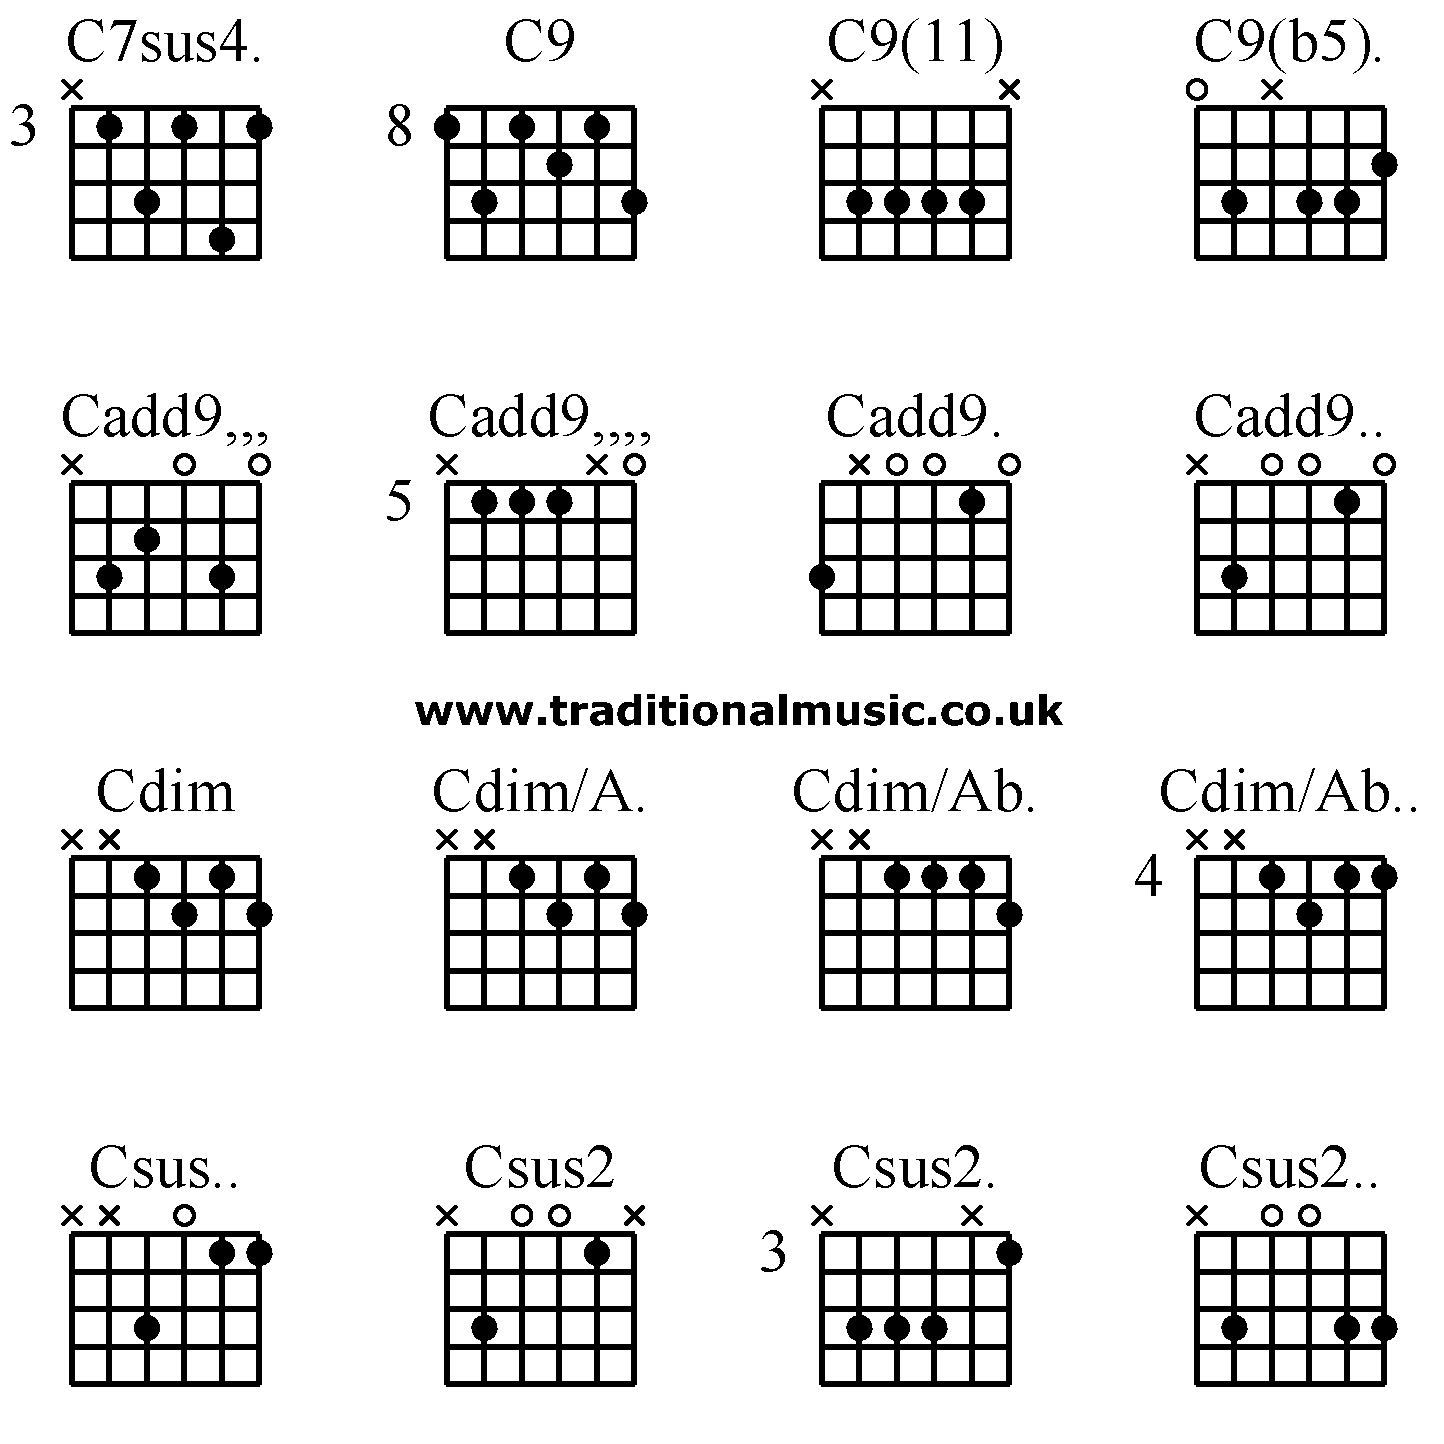 Guitar Chords Advanced C7sus4 C9 C911 C9b5 Cadd9 Cadd9